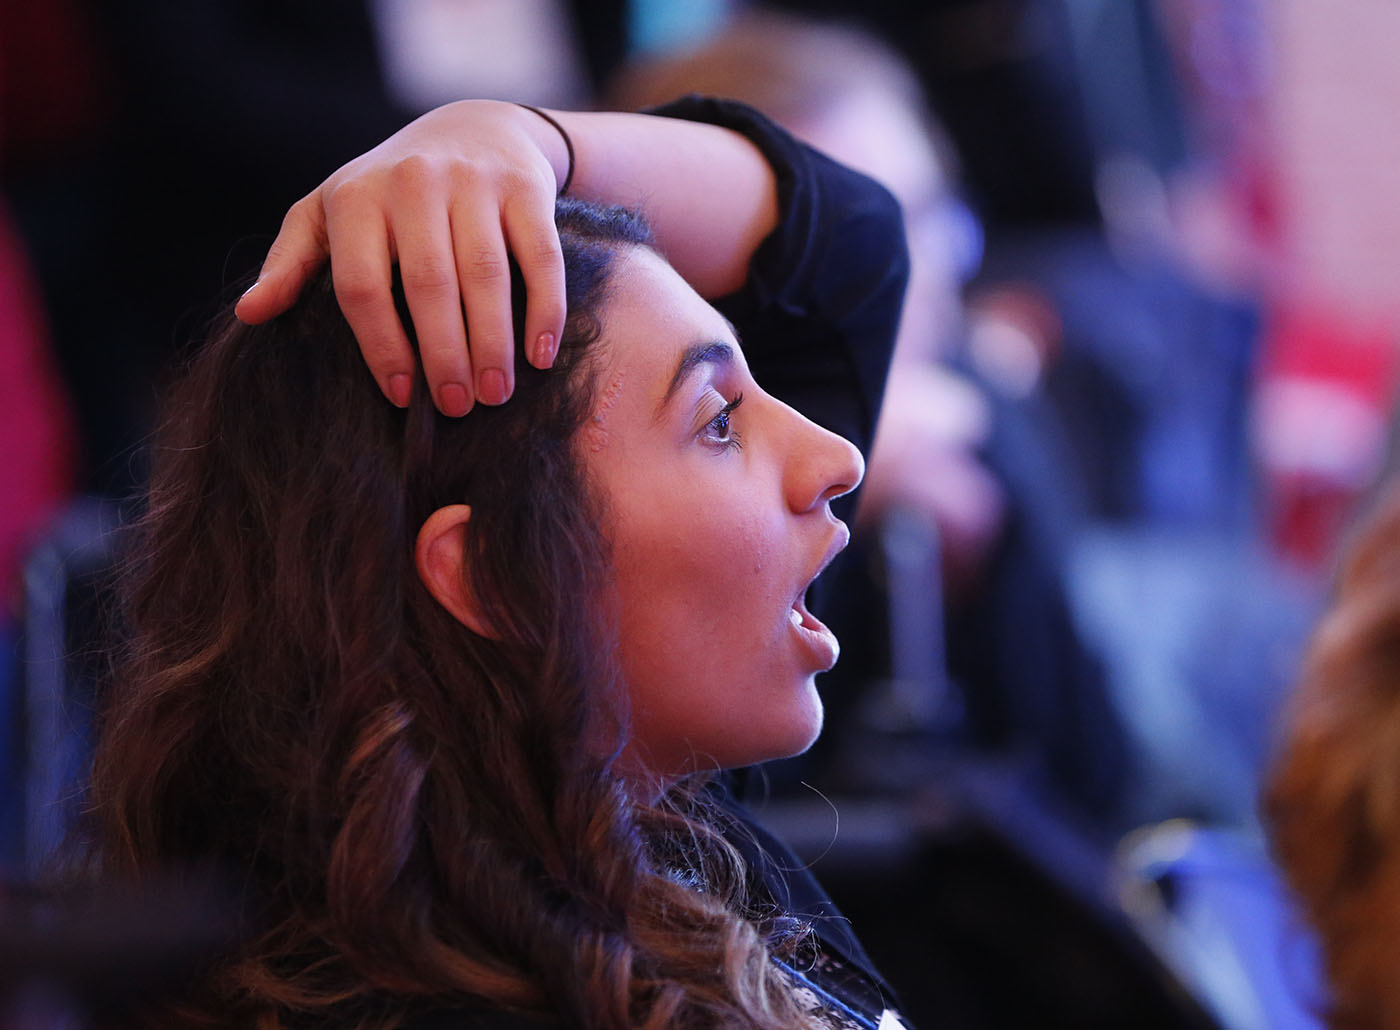 Aryeg Assour of the Town of Tonawanda reacts to ohio being called for trump during the Erie County Democratic Party election night event at the Democrat Headquarters in Larkinville on Tuesday, Nov. 8, 2016. (Derek Gee/Buffalo News)